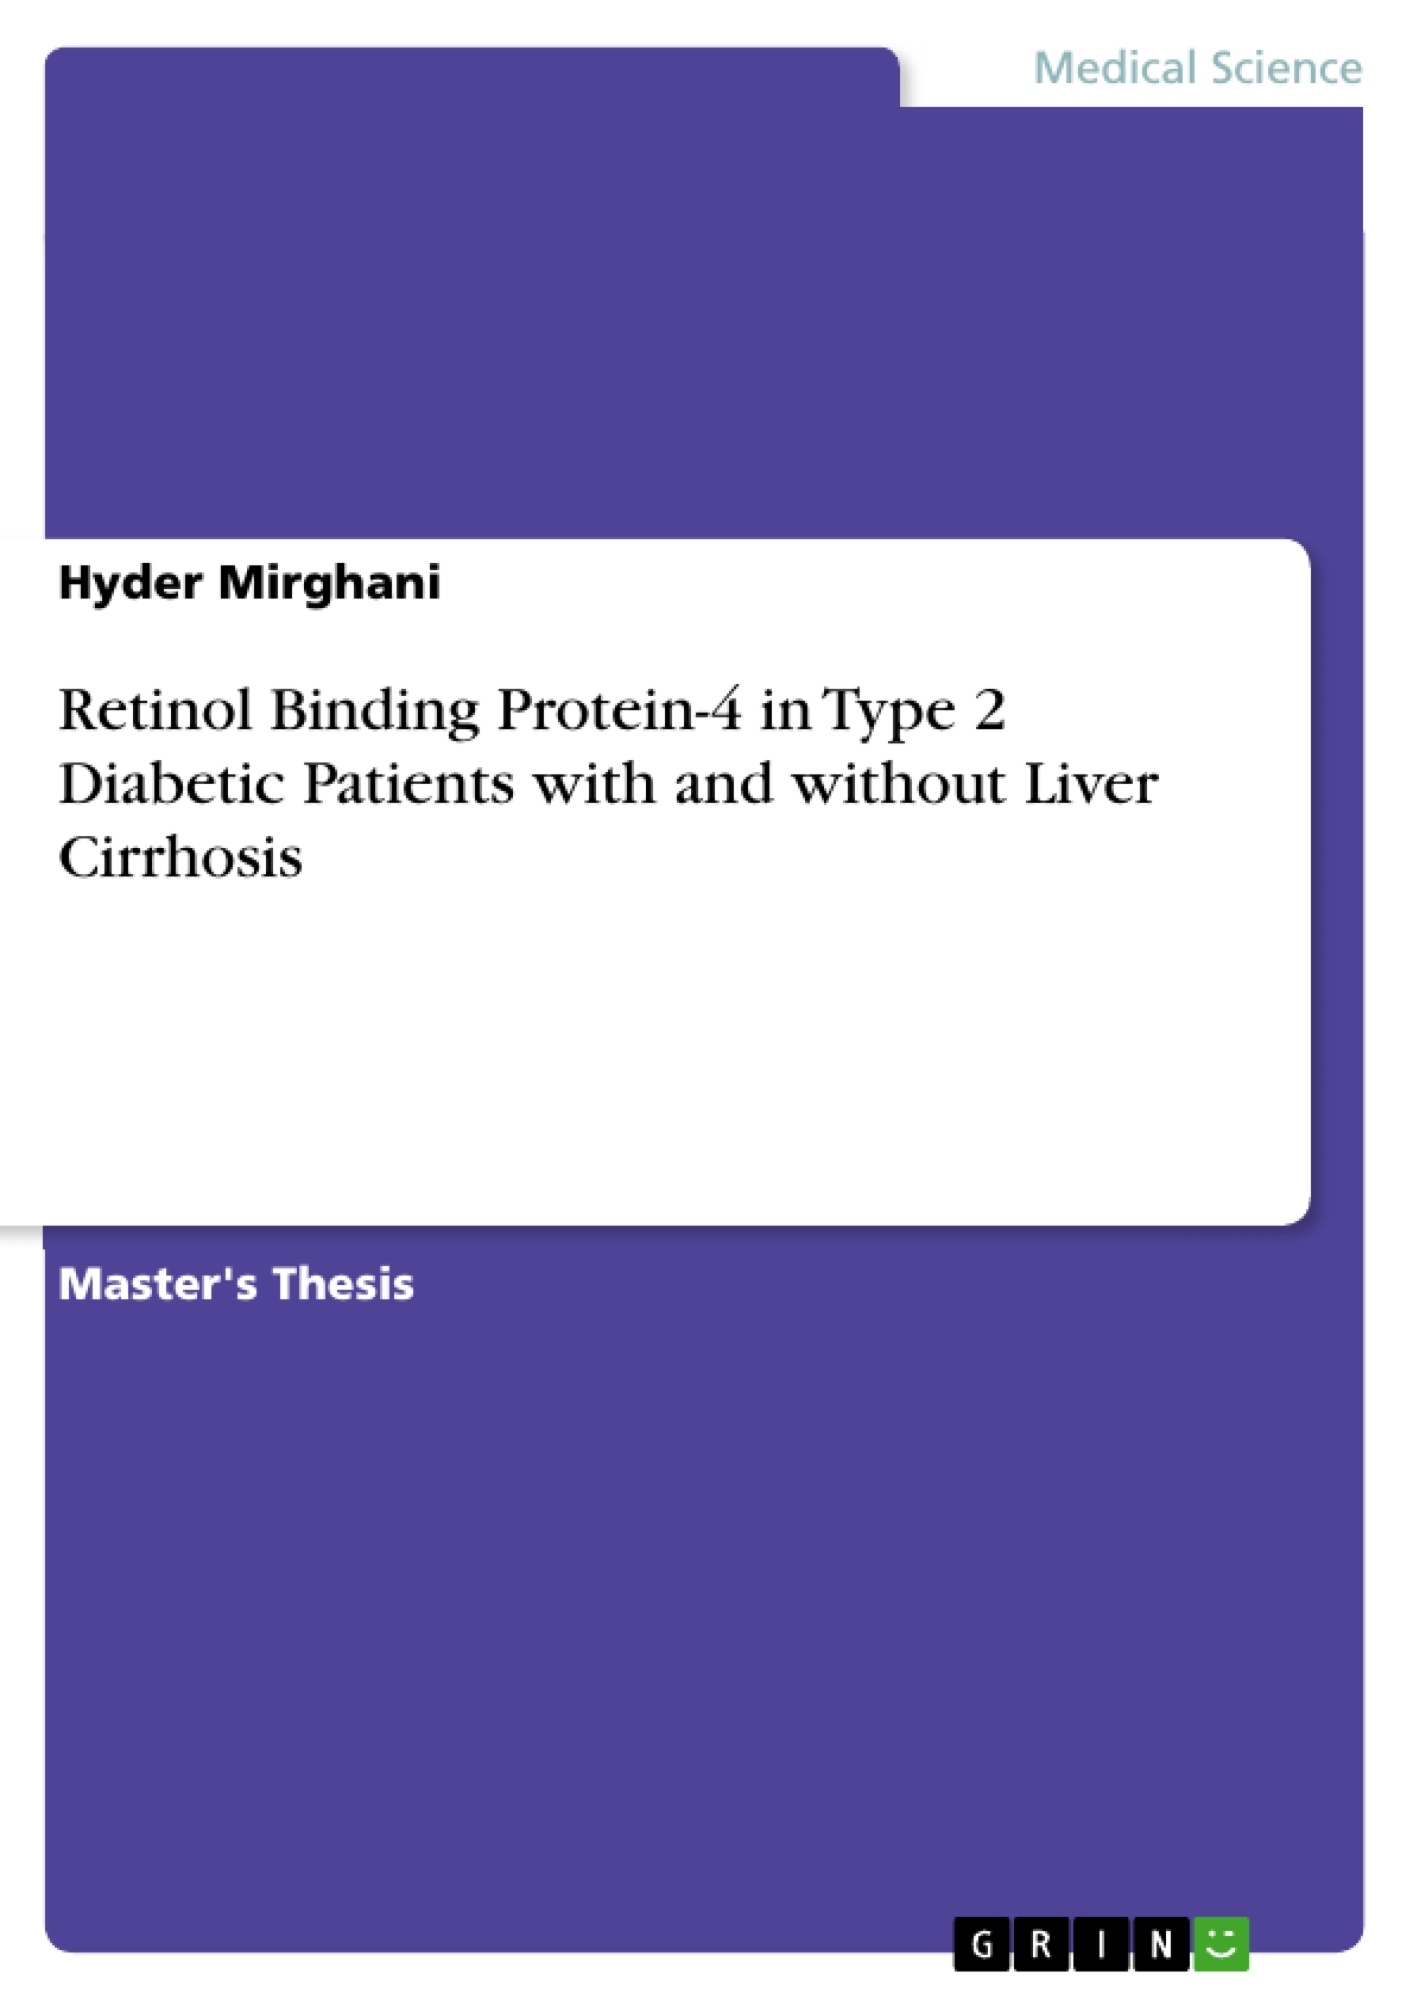 Title: Retinol Binding Protein-4 in Type 2 Diabetic Patients with and without Liver Cirrhosis